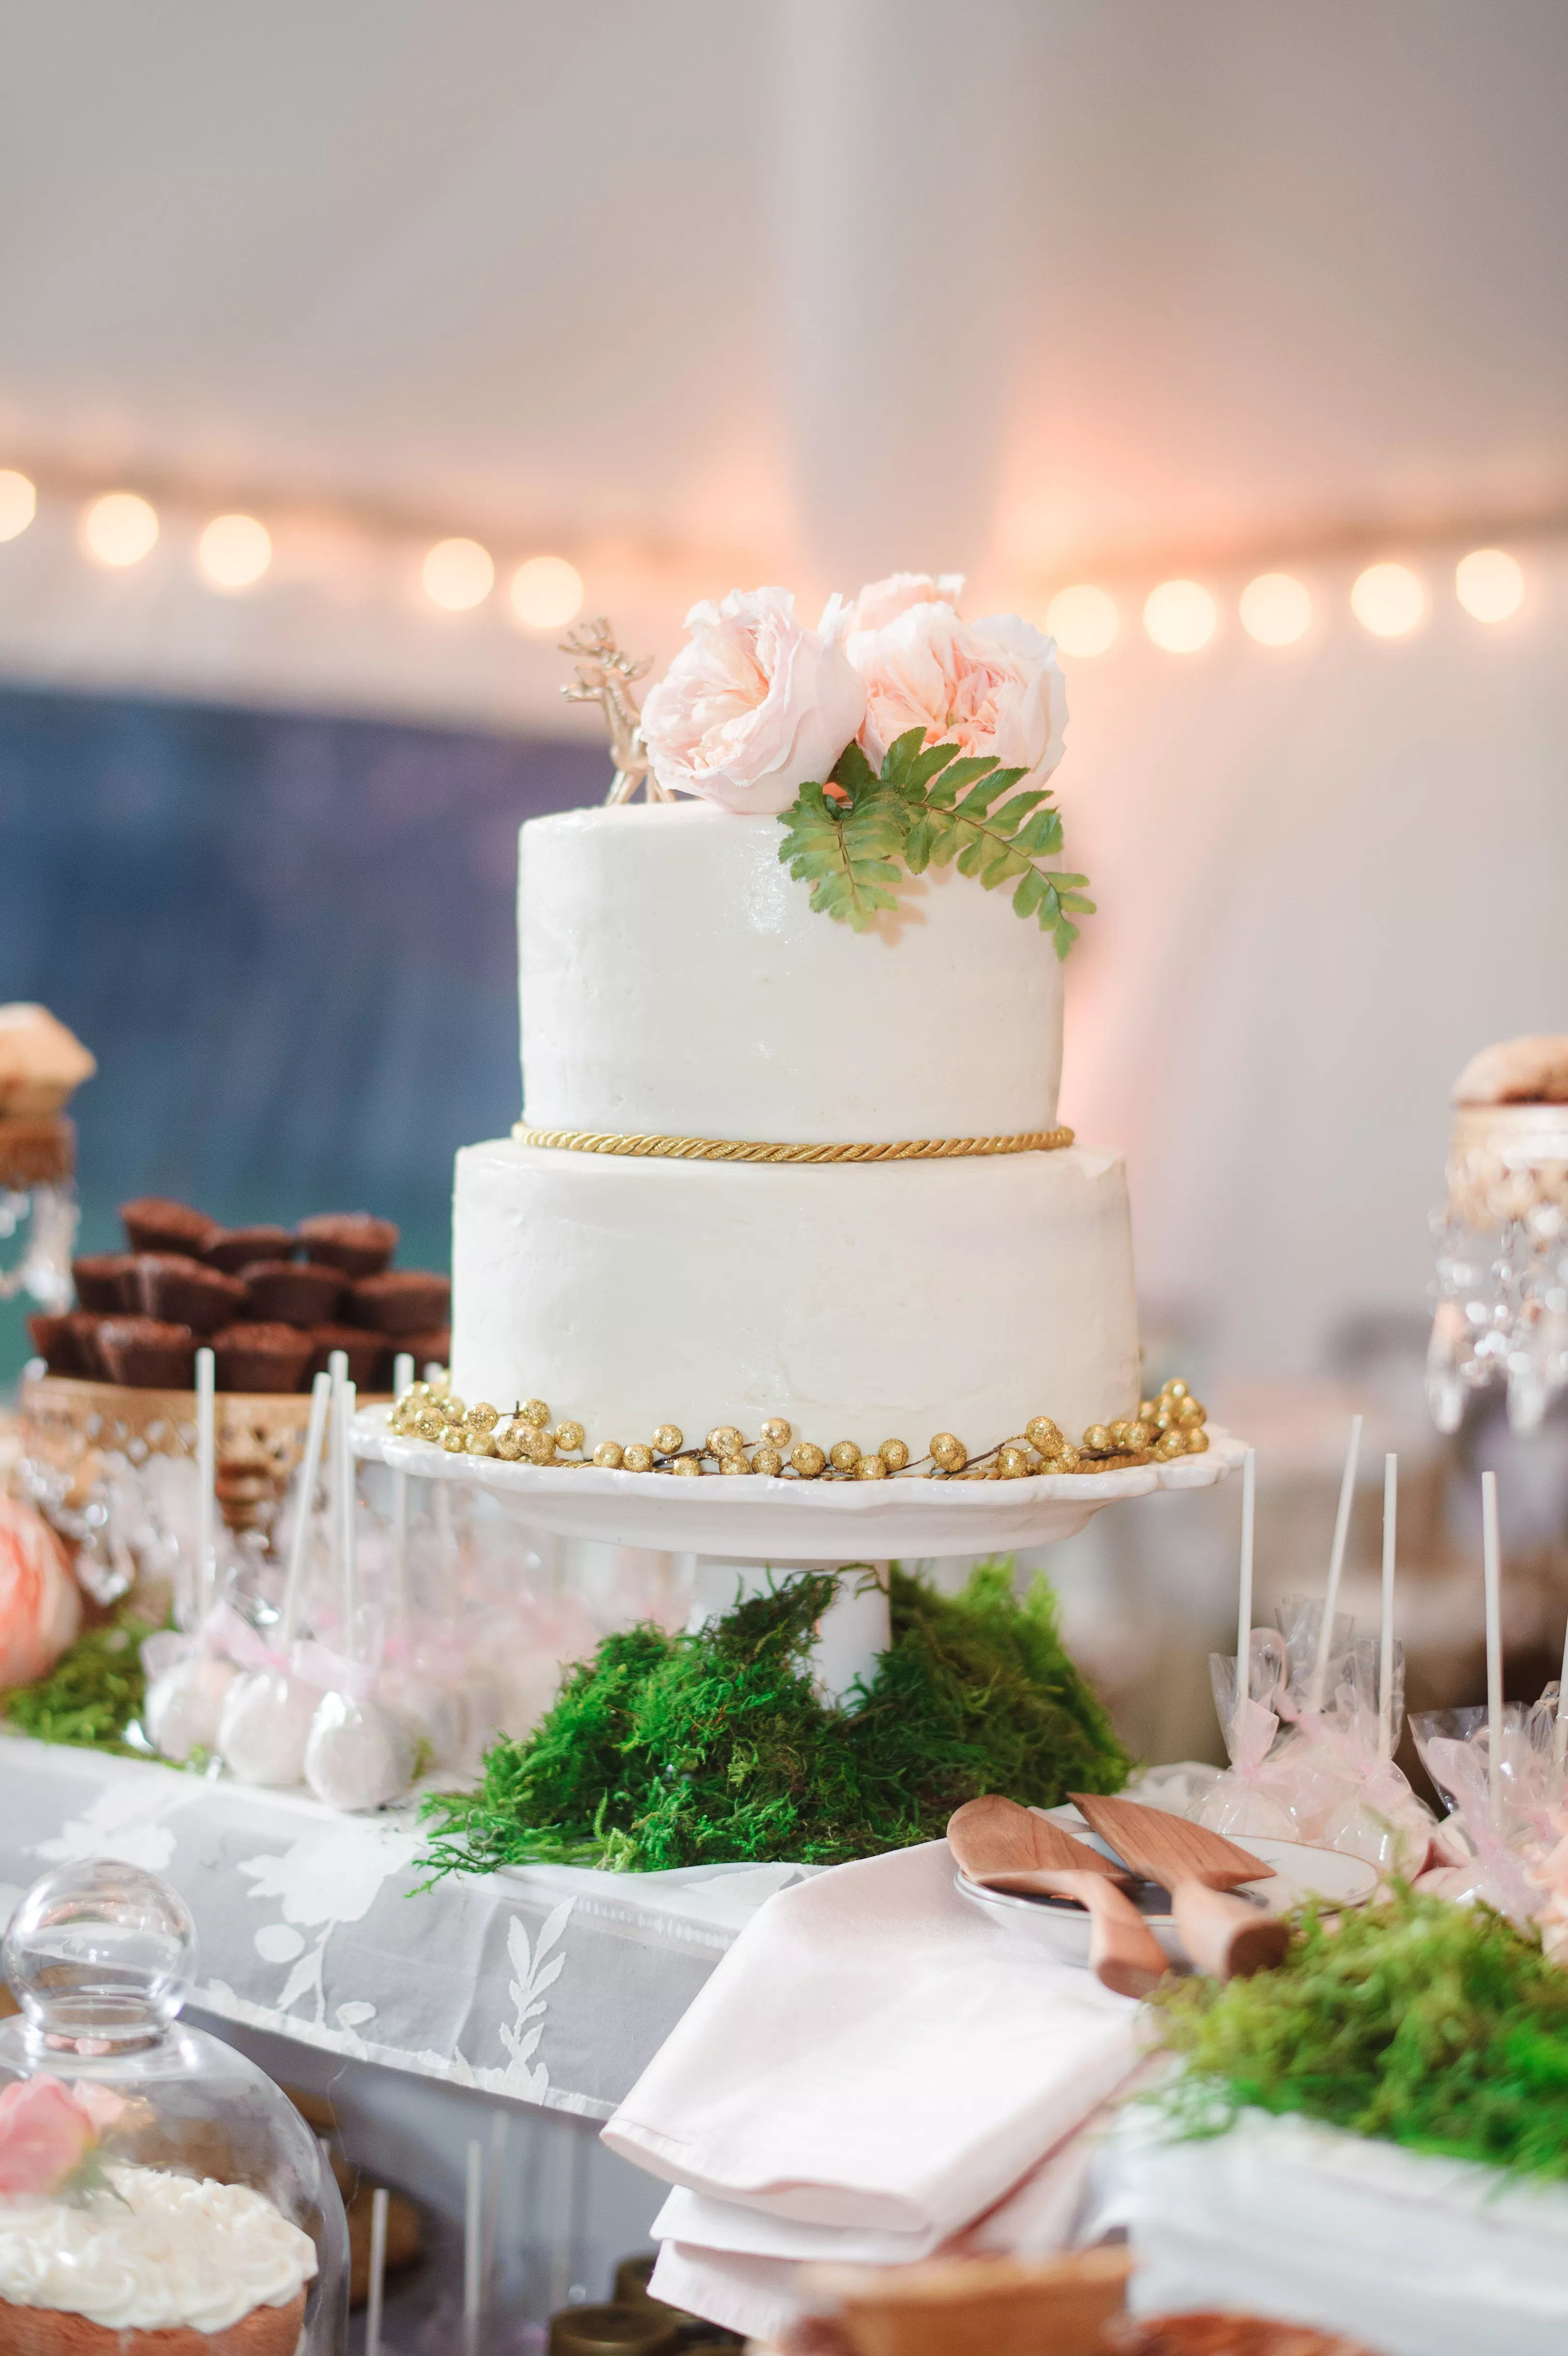 Tiered White Wedding Cake With Gold Accents